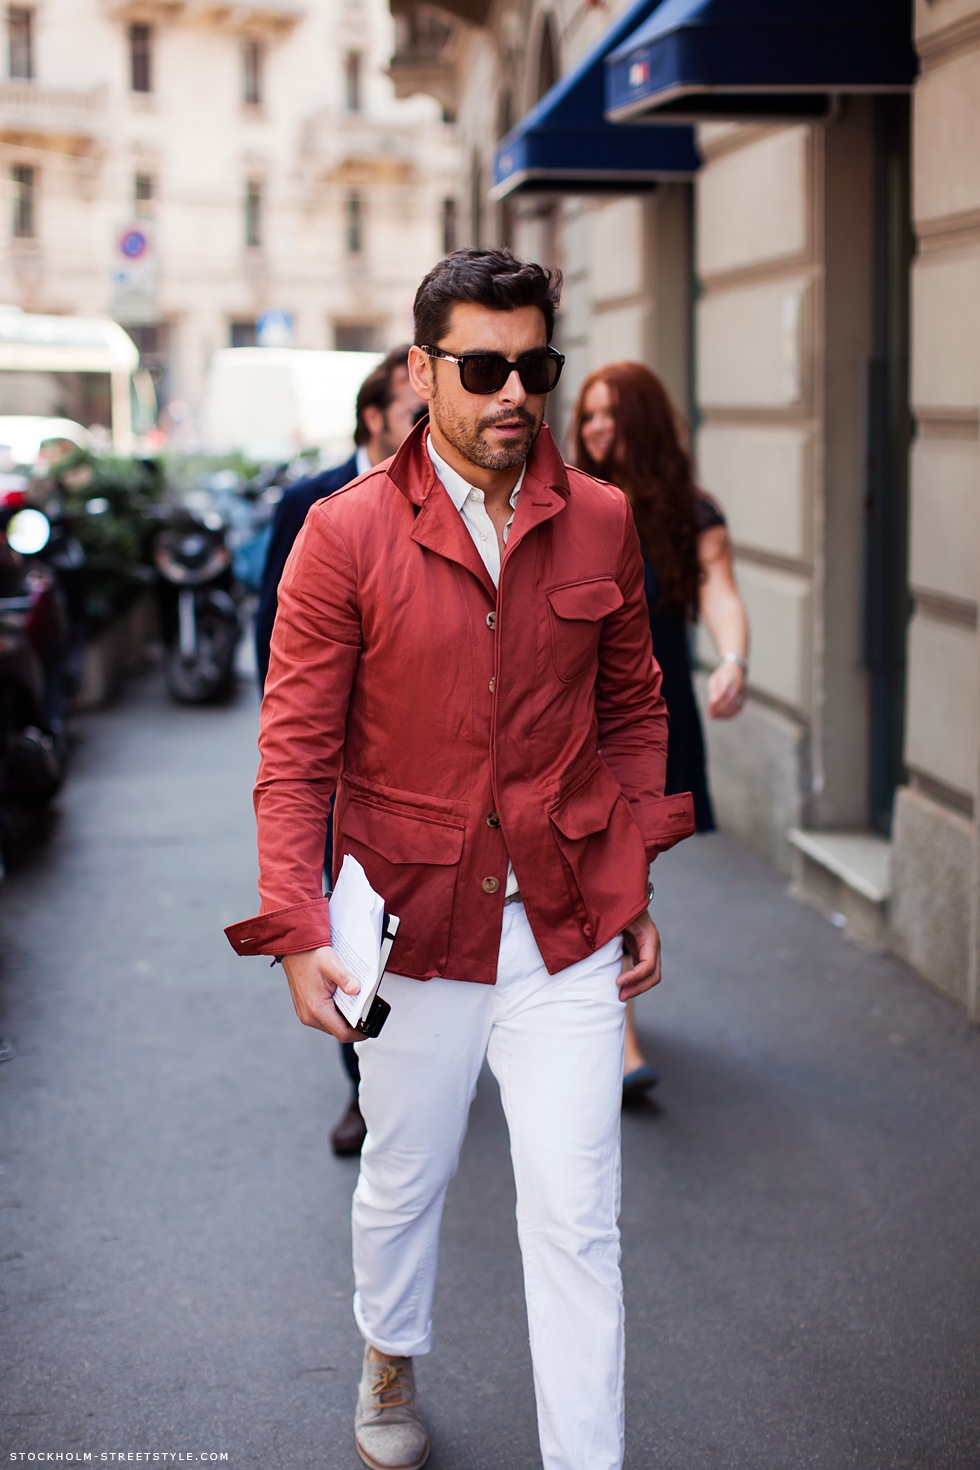 red-jacket-white-pants-streetstyle-stockholm